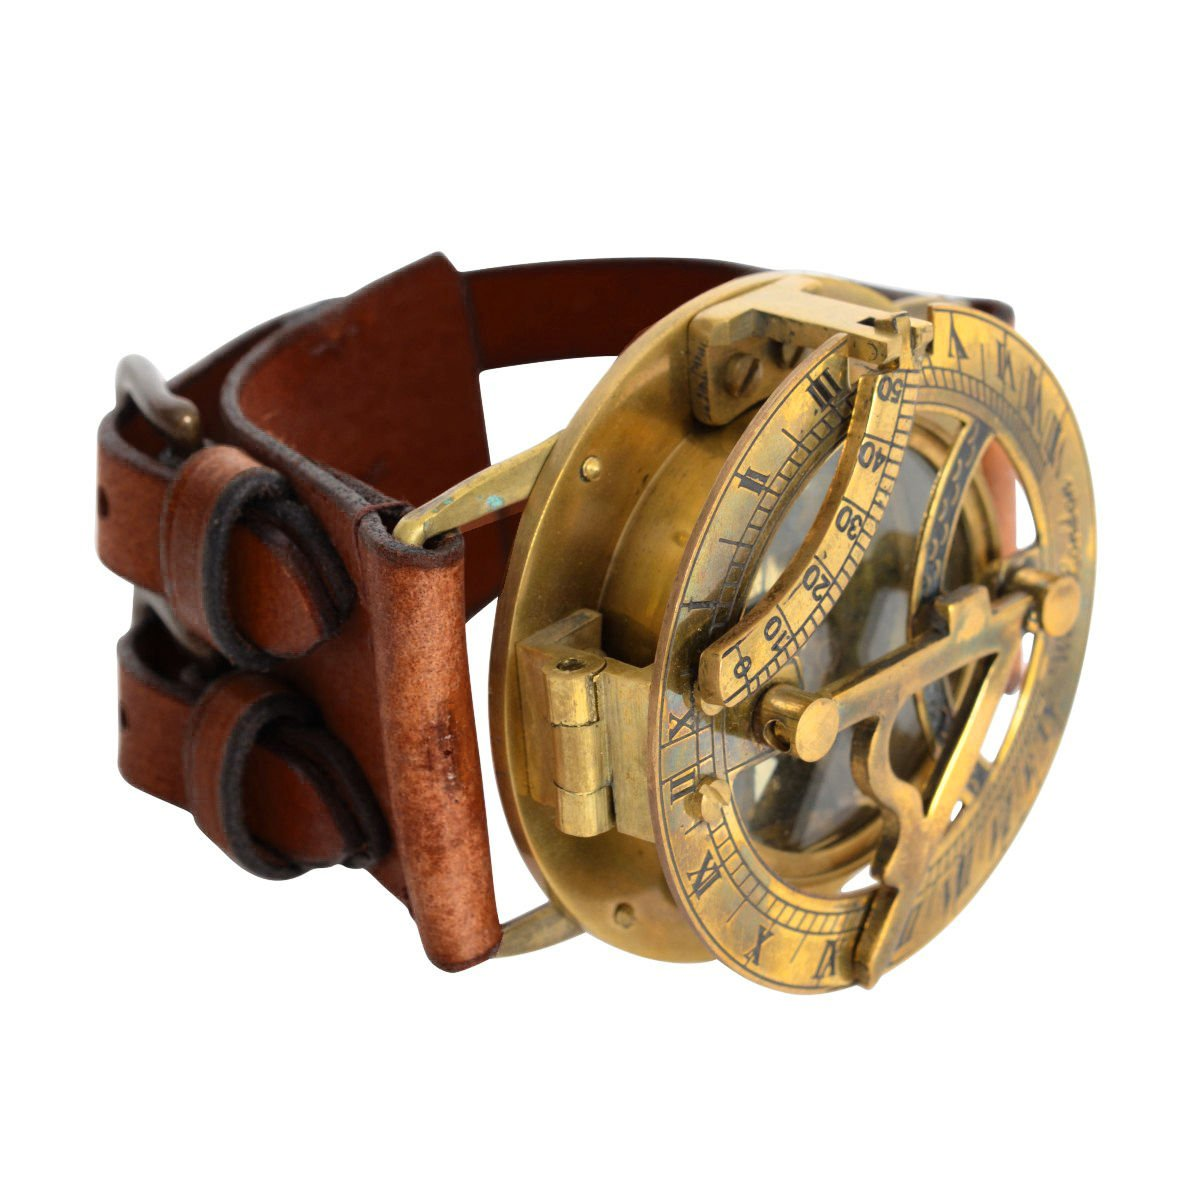 RARE STEAMPUNK RETRO SOLID ANTIQUATED BRASS LEATHER SUNDIAL COMPASS WRIST WATCH